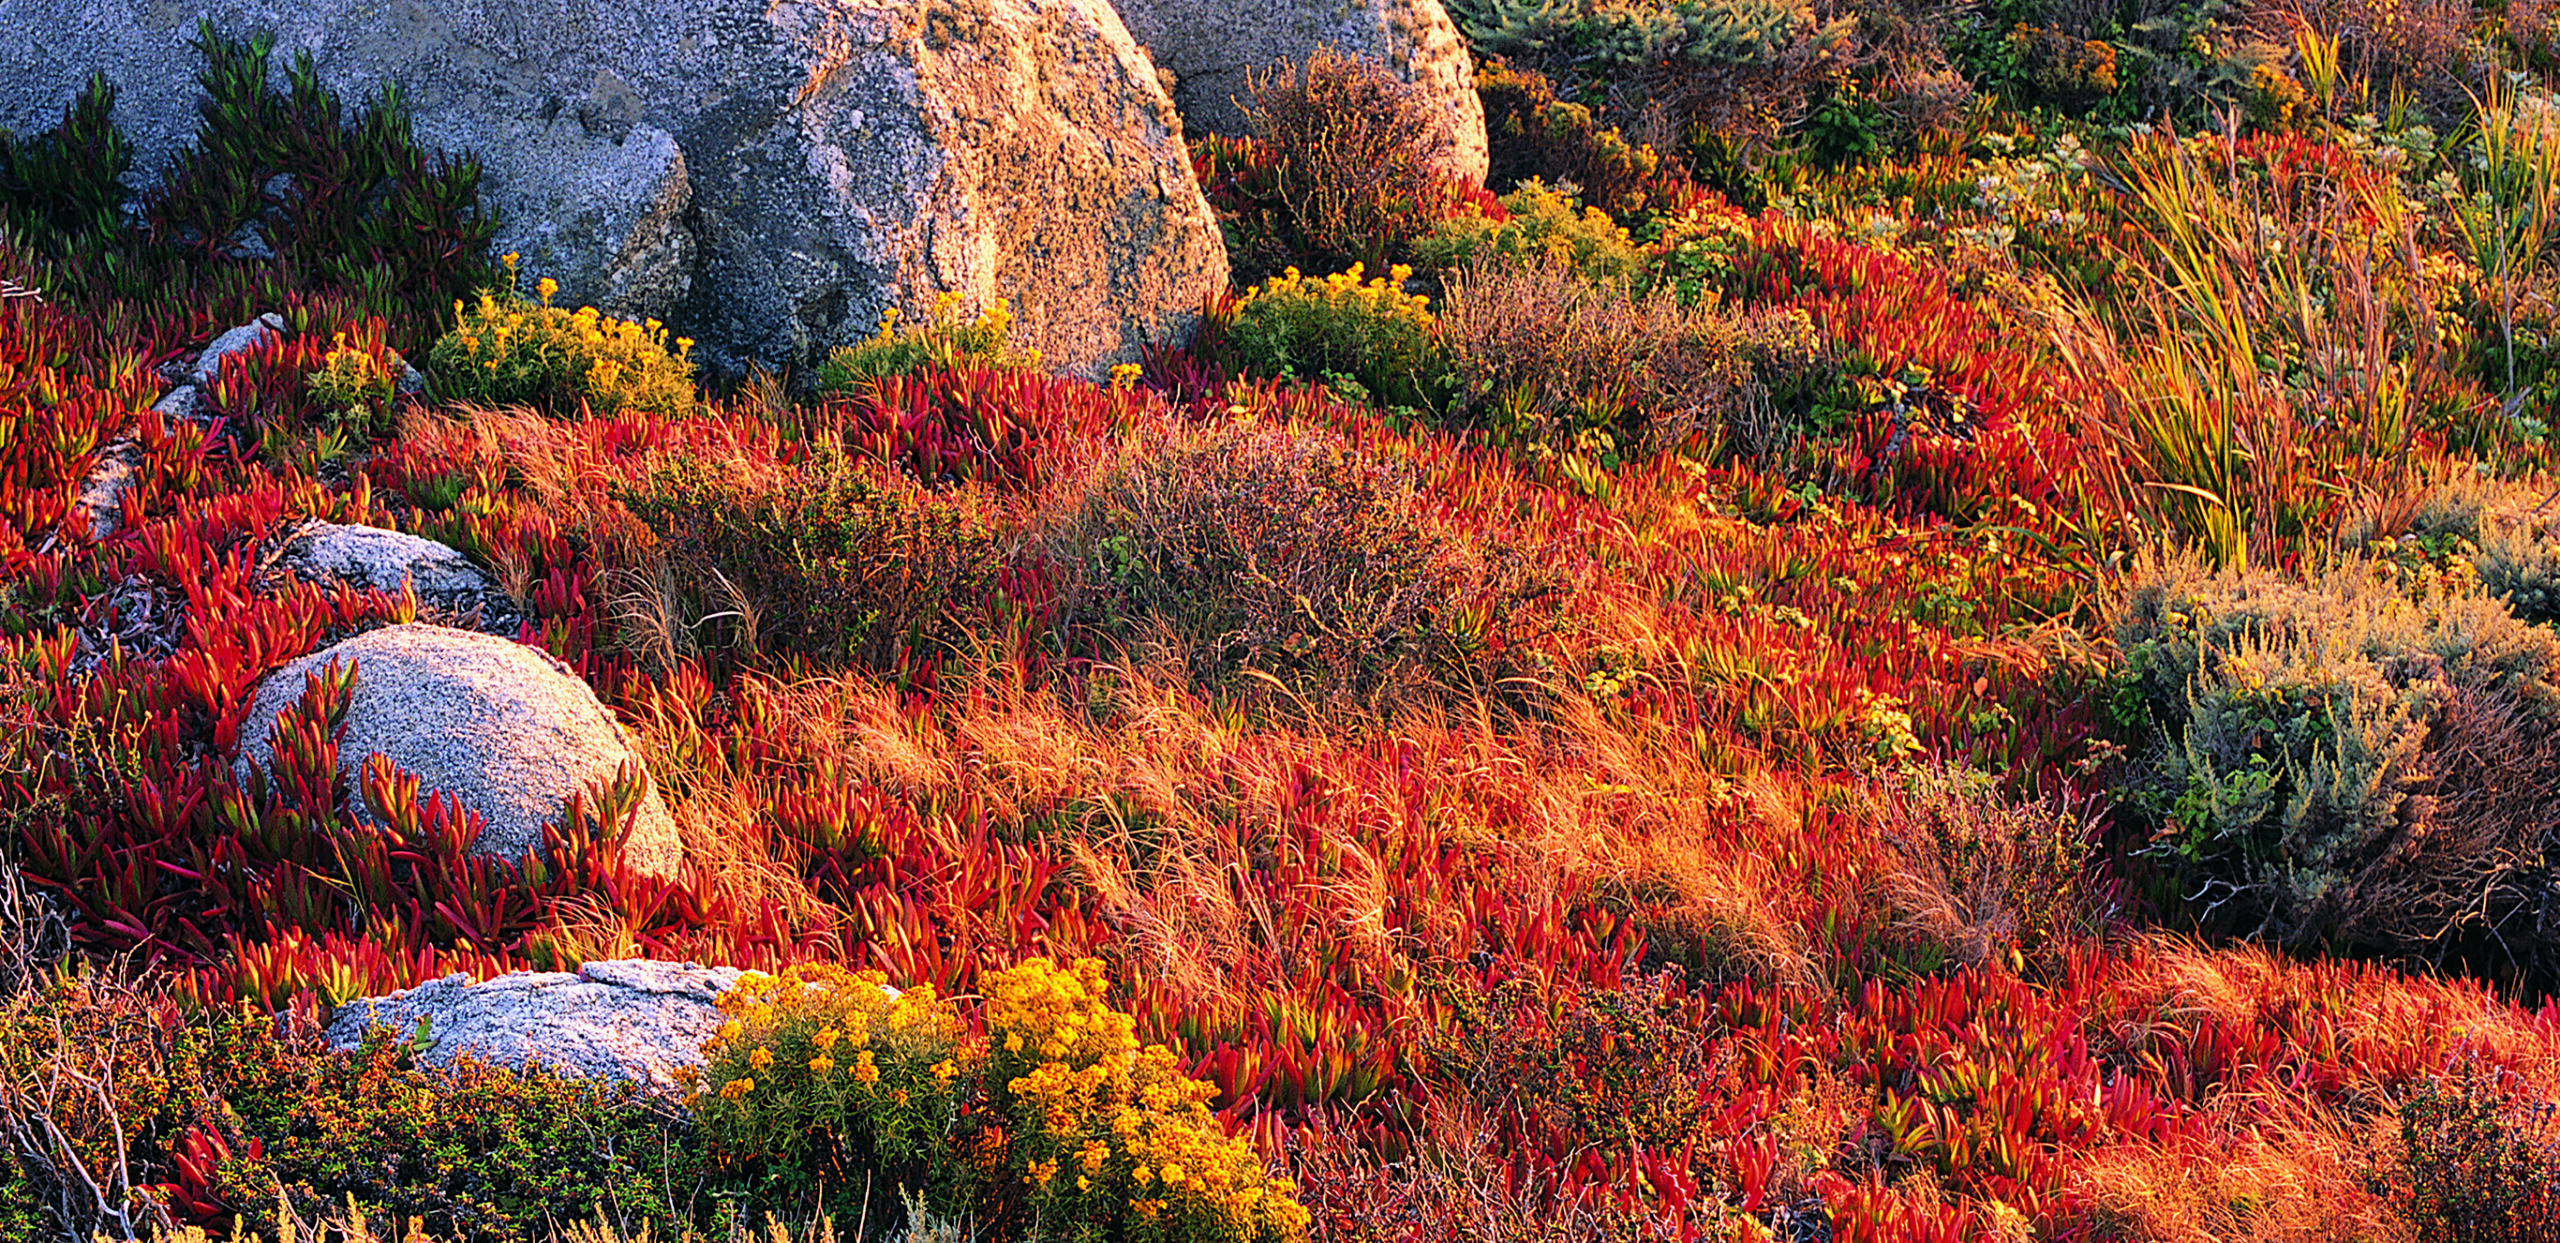 Rocks, grasses, and wildflowers, Cooley Dickinson Health Care System, Northampton, MA 01060.